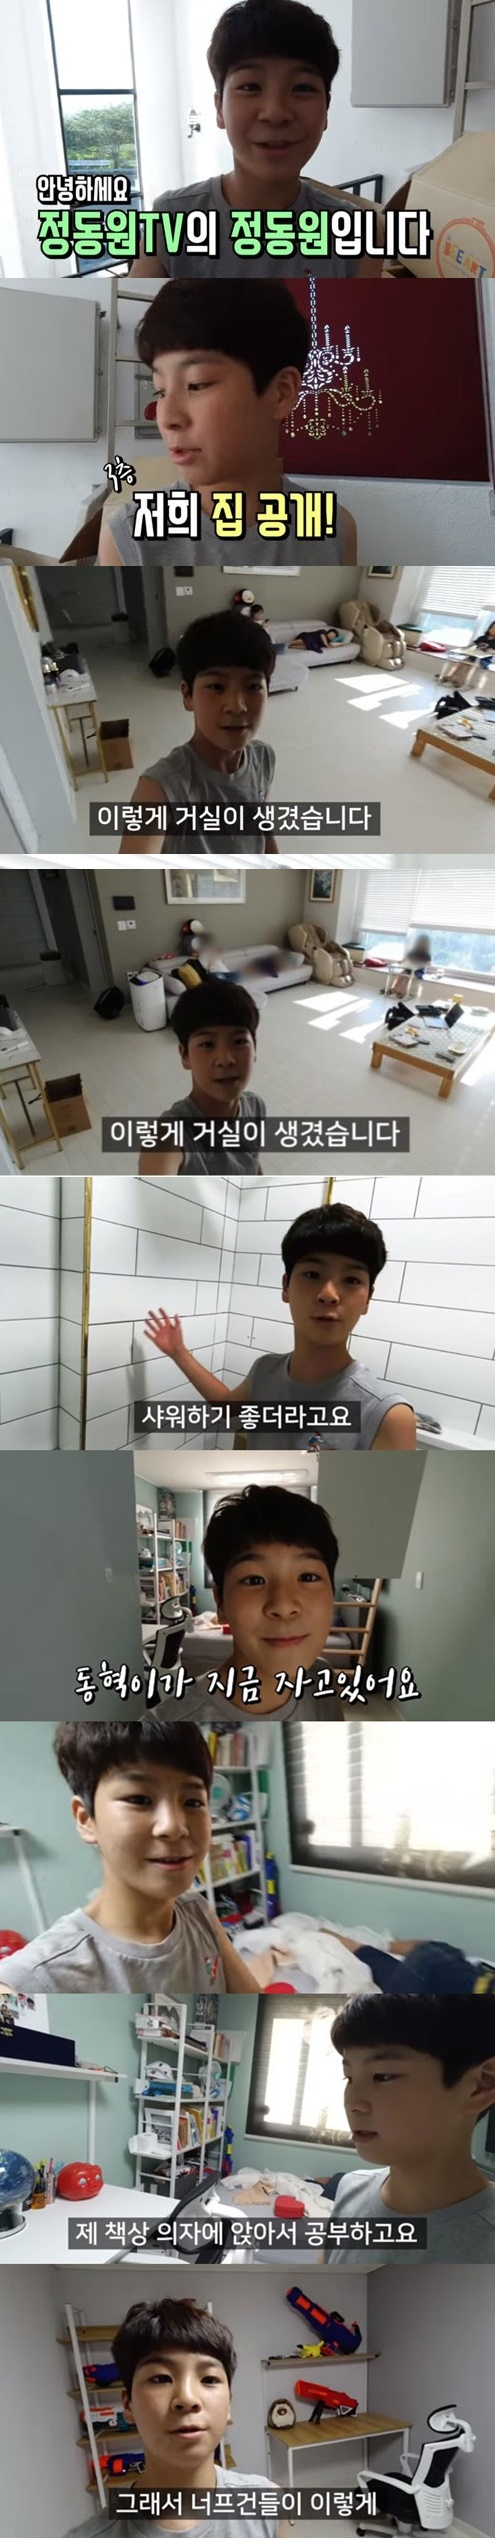 'Controversy over the ownership of the house' Jeong Dong-won , online home party after remodeling home